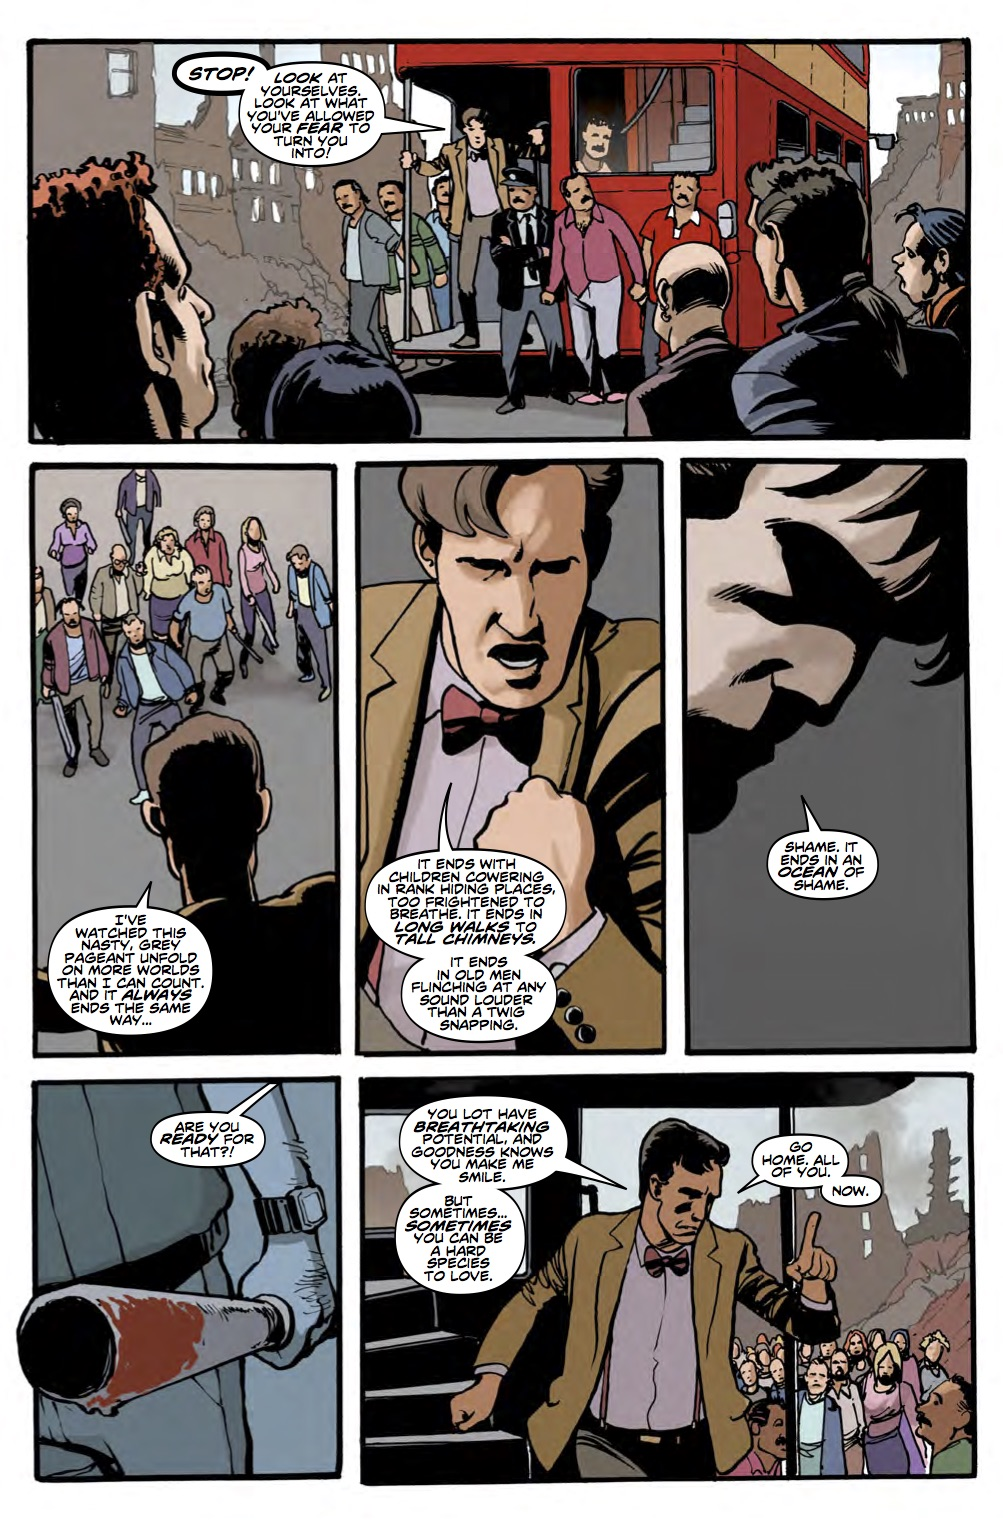 Eleventh_Doctor_3_4 Page 3 (Credit: Titan)